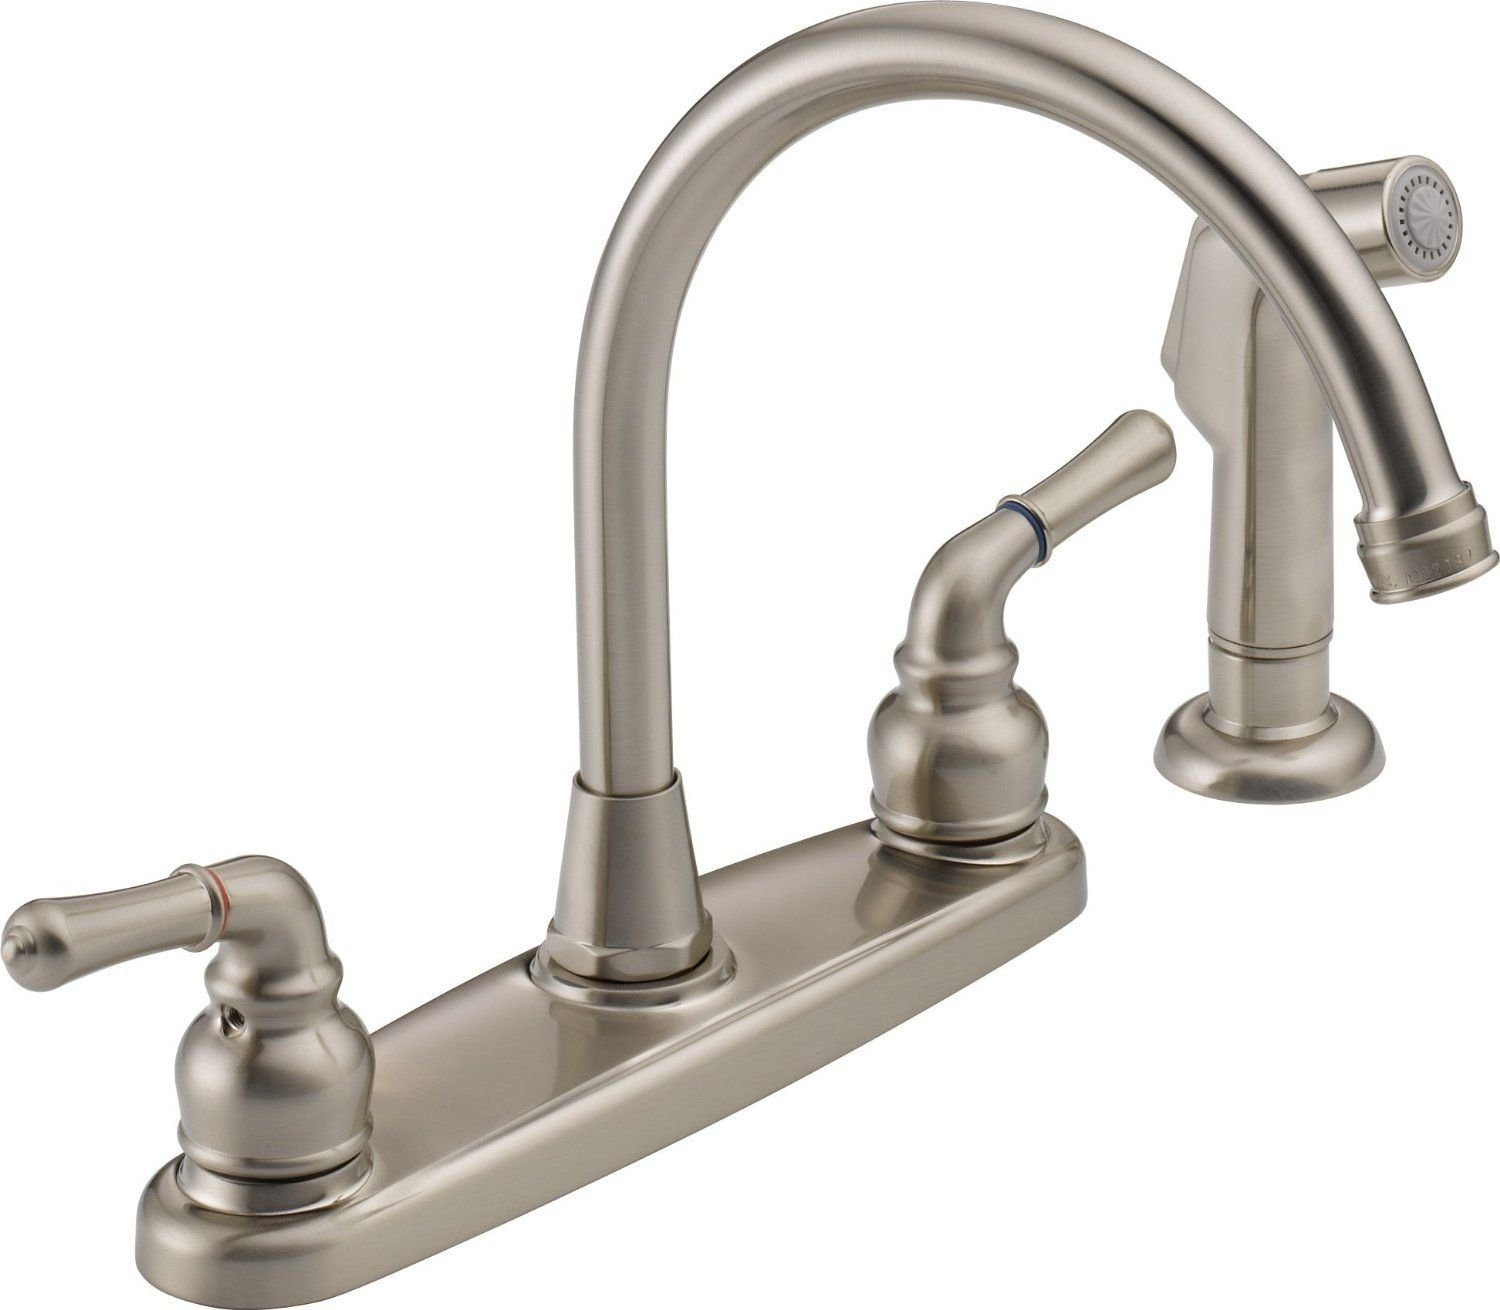 amazon com westbrass was01 20 high arc two handle three four hole amazon com westbrass was01 20 high arc two handle three four hole kitchen faucet with side spray brushed nickel stainless steel home kitchen